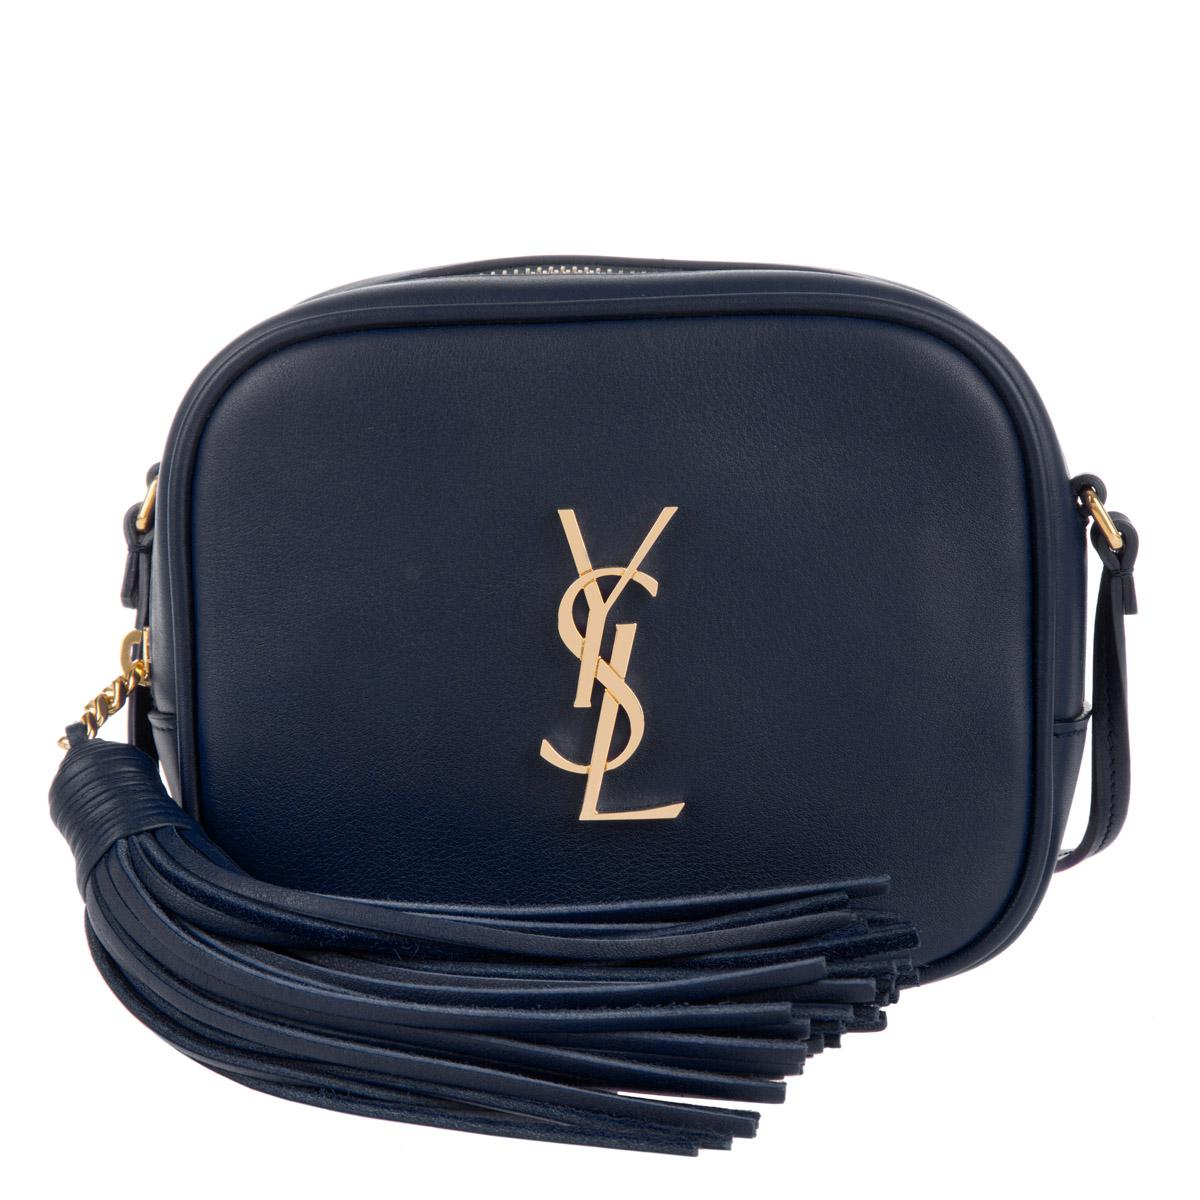 Saint Laurent Ysl Pouch Monogramme Crossbody Marine nero in Blue - Lyst 7a54074fd84f0